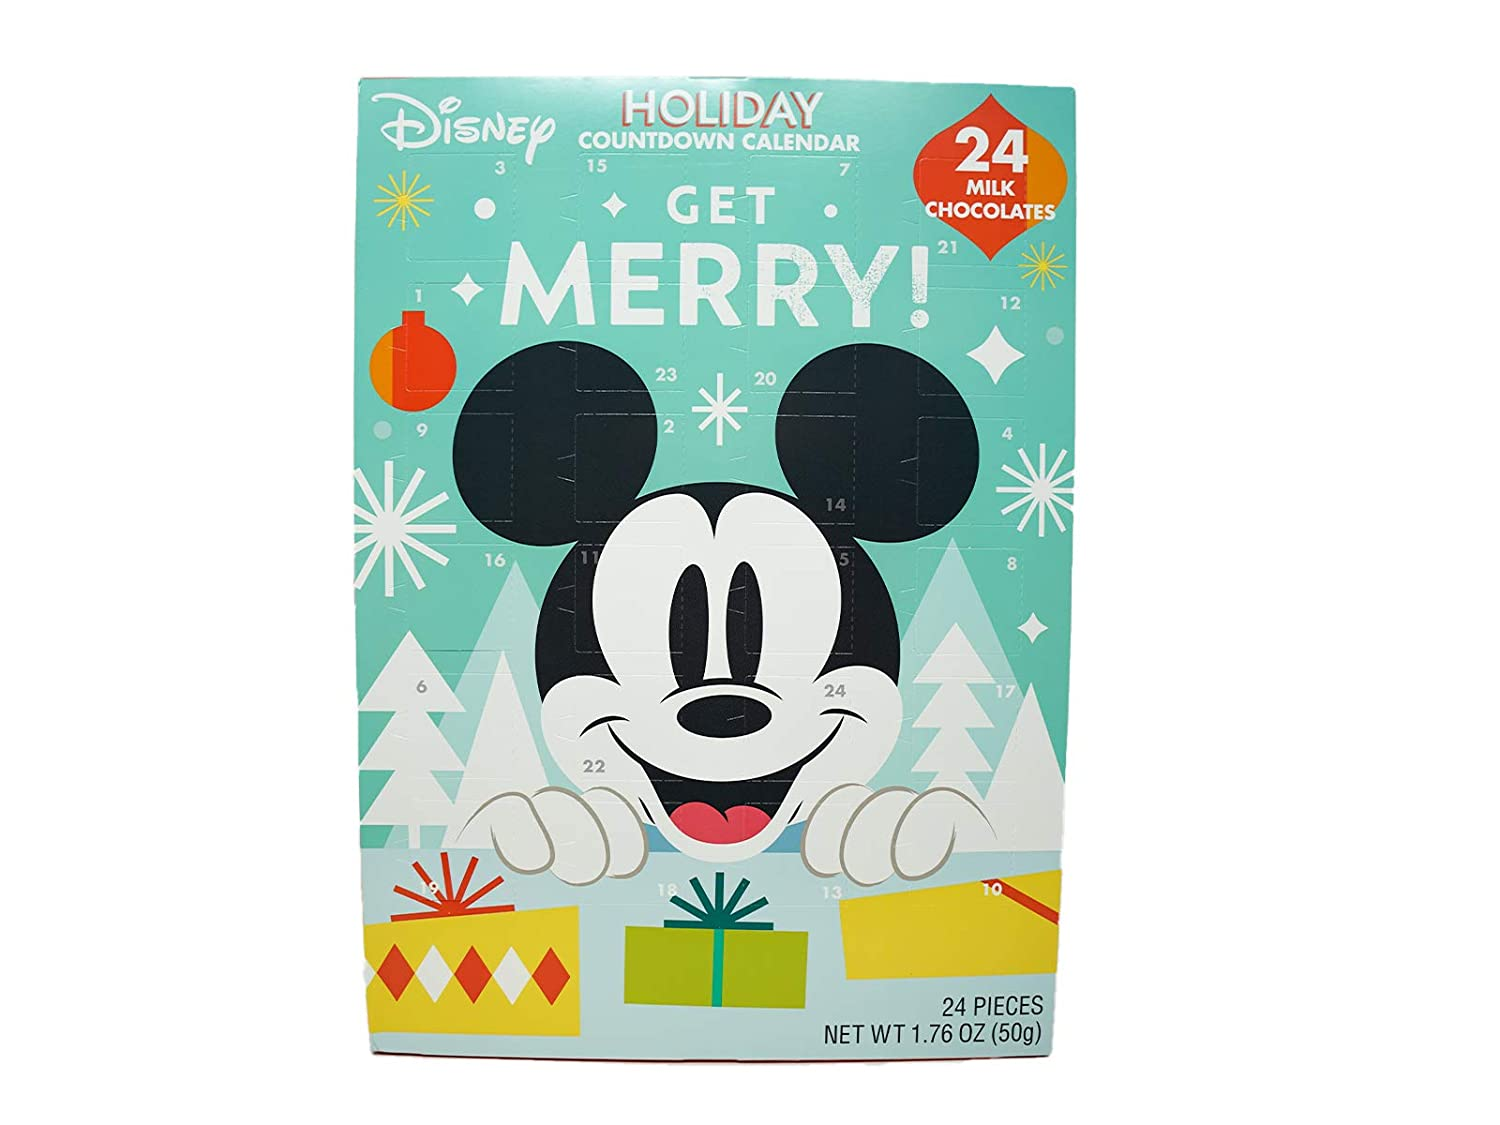 Disney Mickey Mouse and Friends Christmas Advent Countdown Calendar with 24 Milk Chocolate Pieces, 1.76 oz